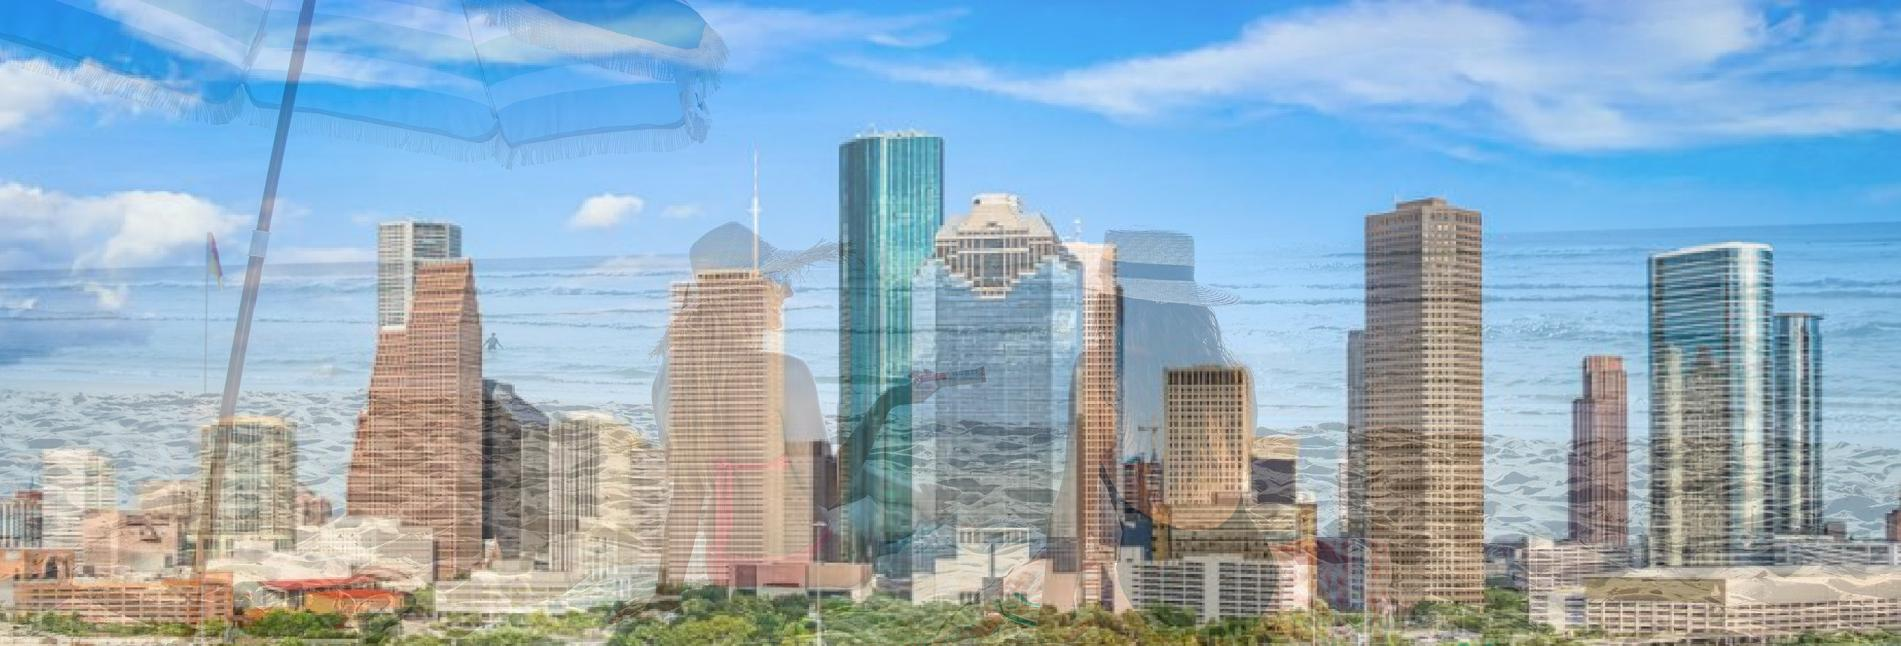 Houston Skyline with beach background july